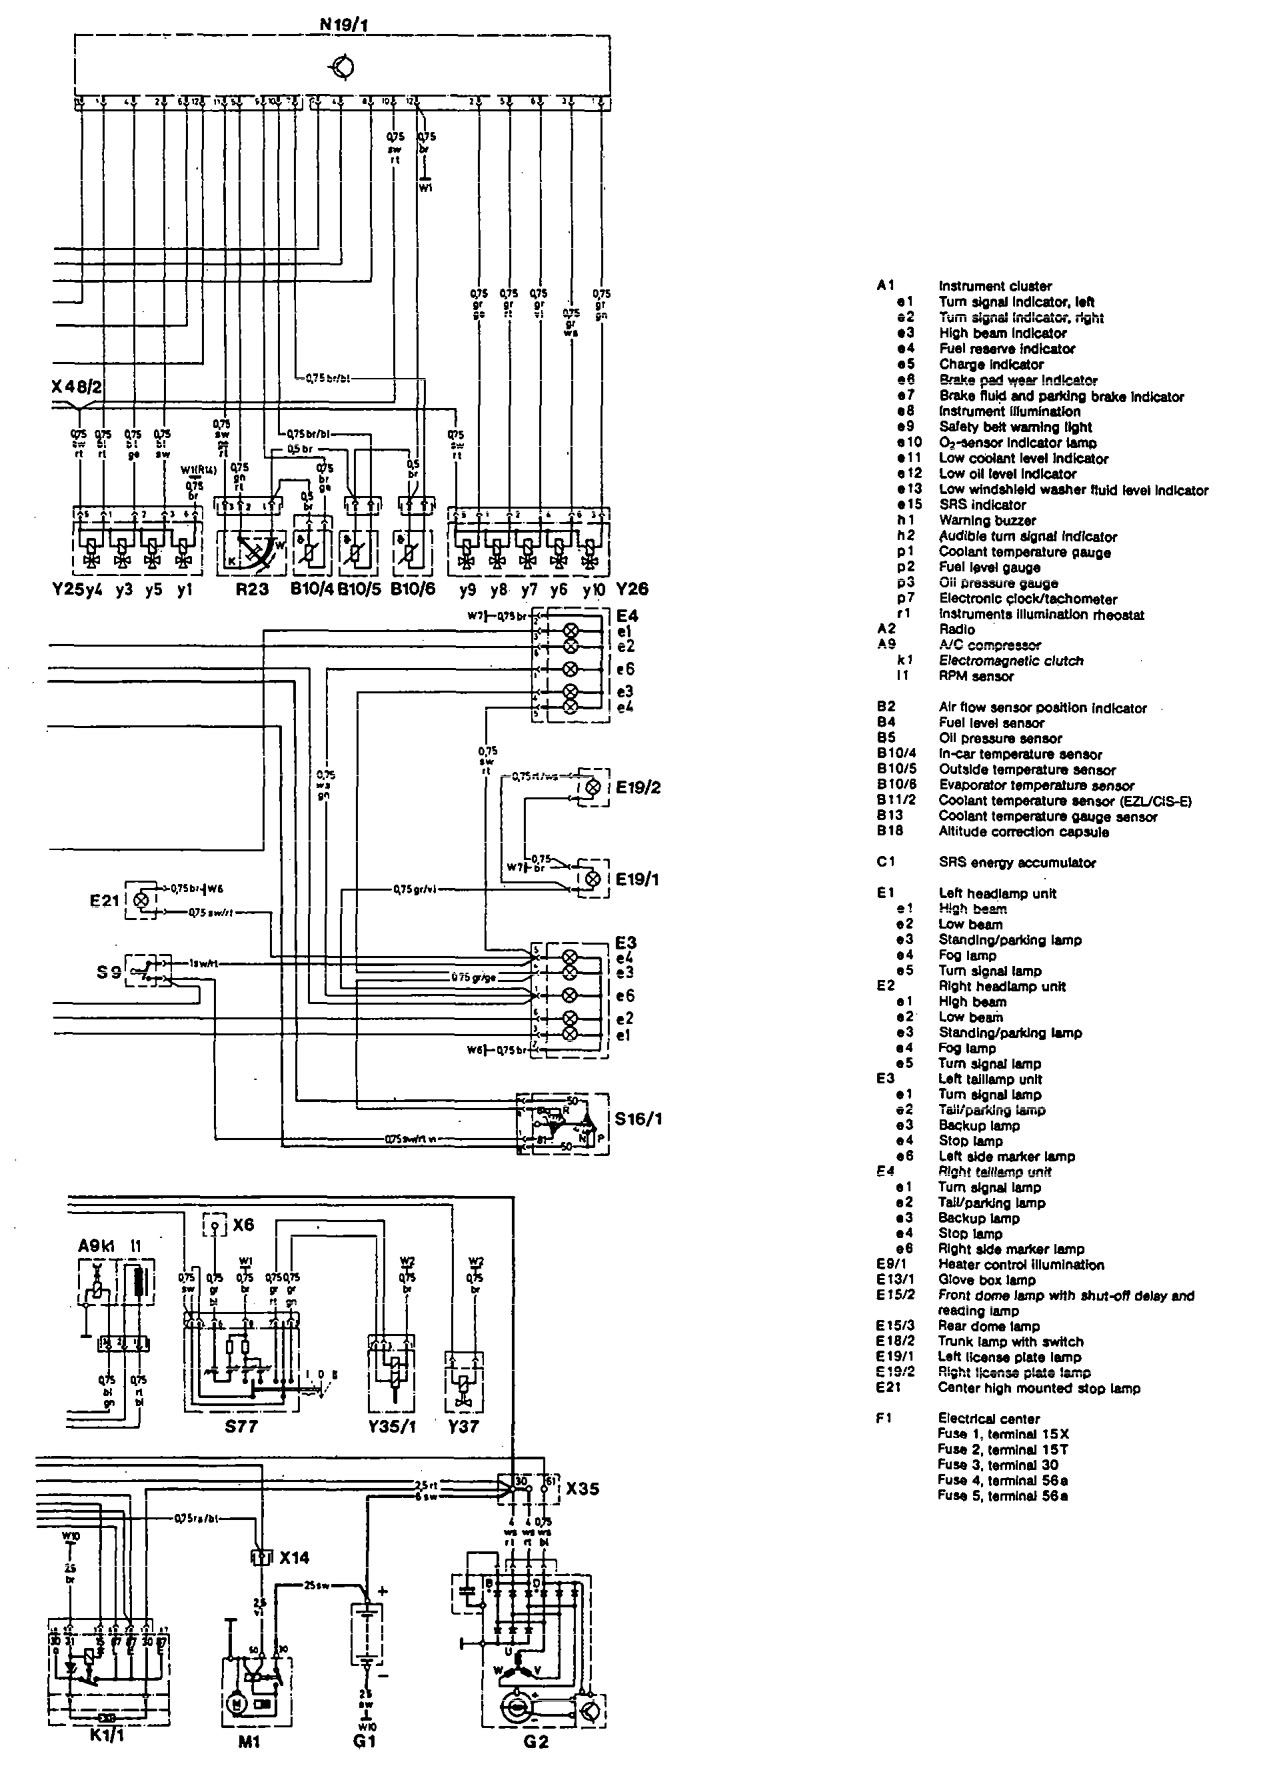 mercedes-benz 190e  1993  - wiring diagrams